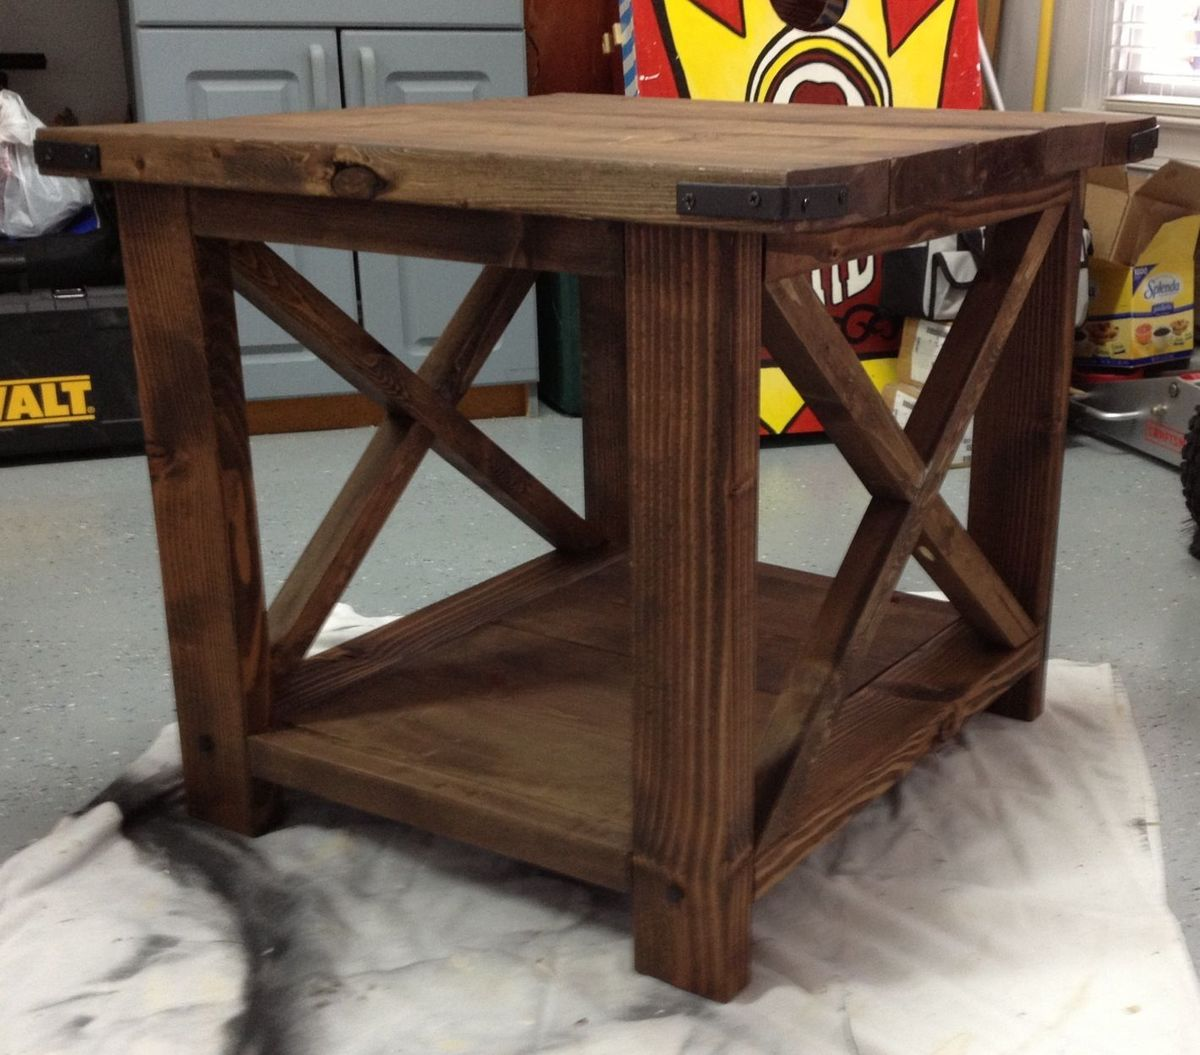 Ana White Our Rustic End Table Diy Projects